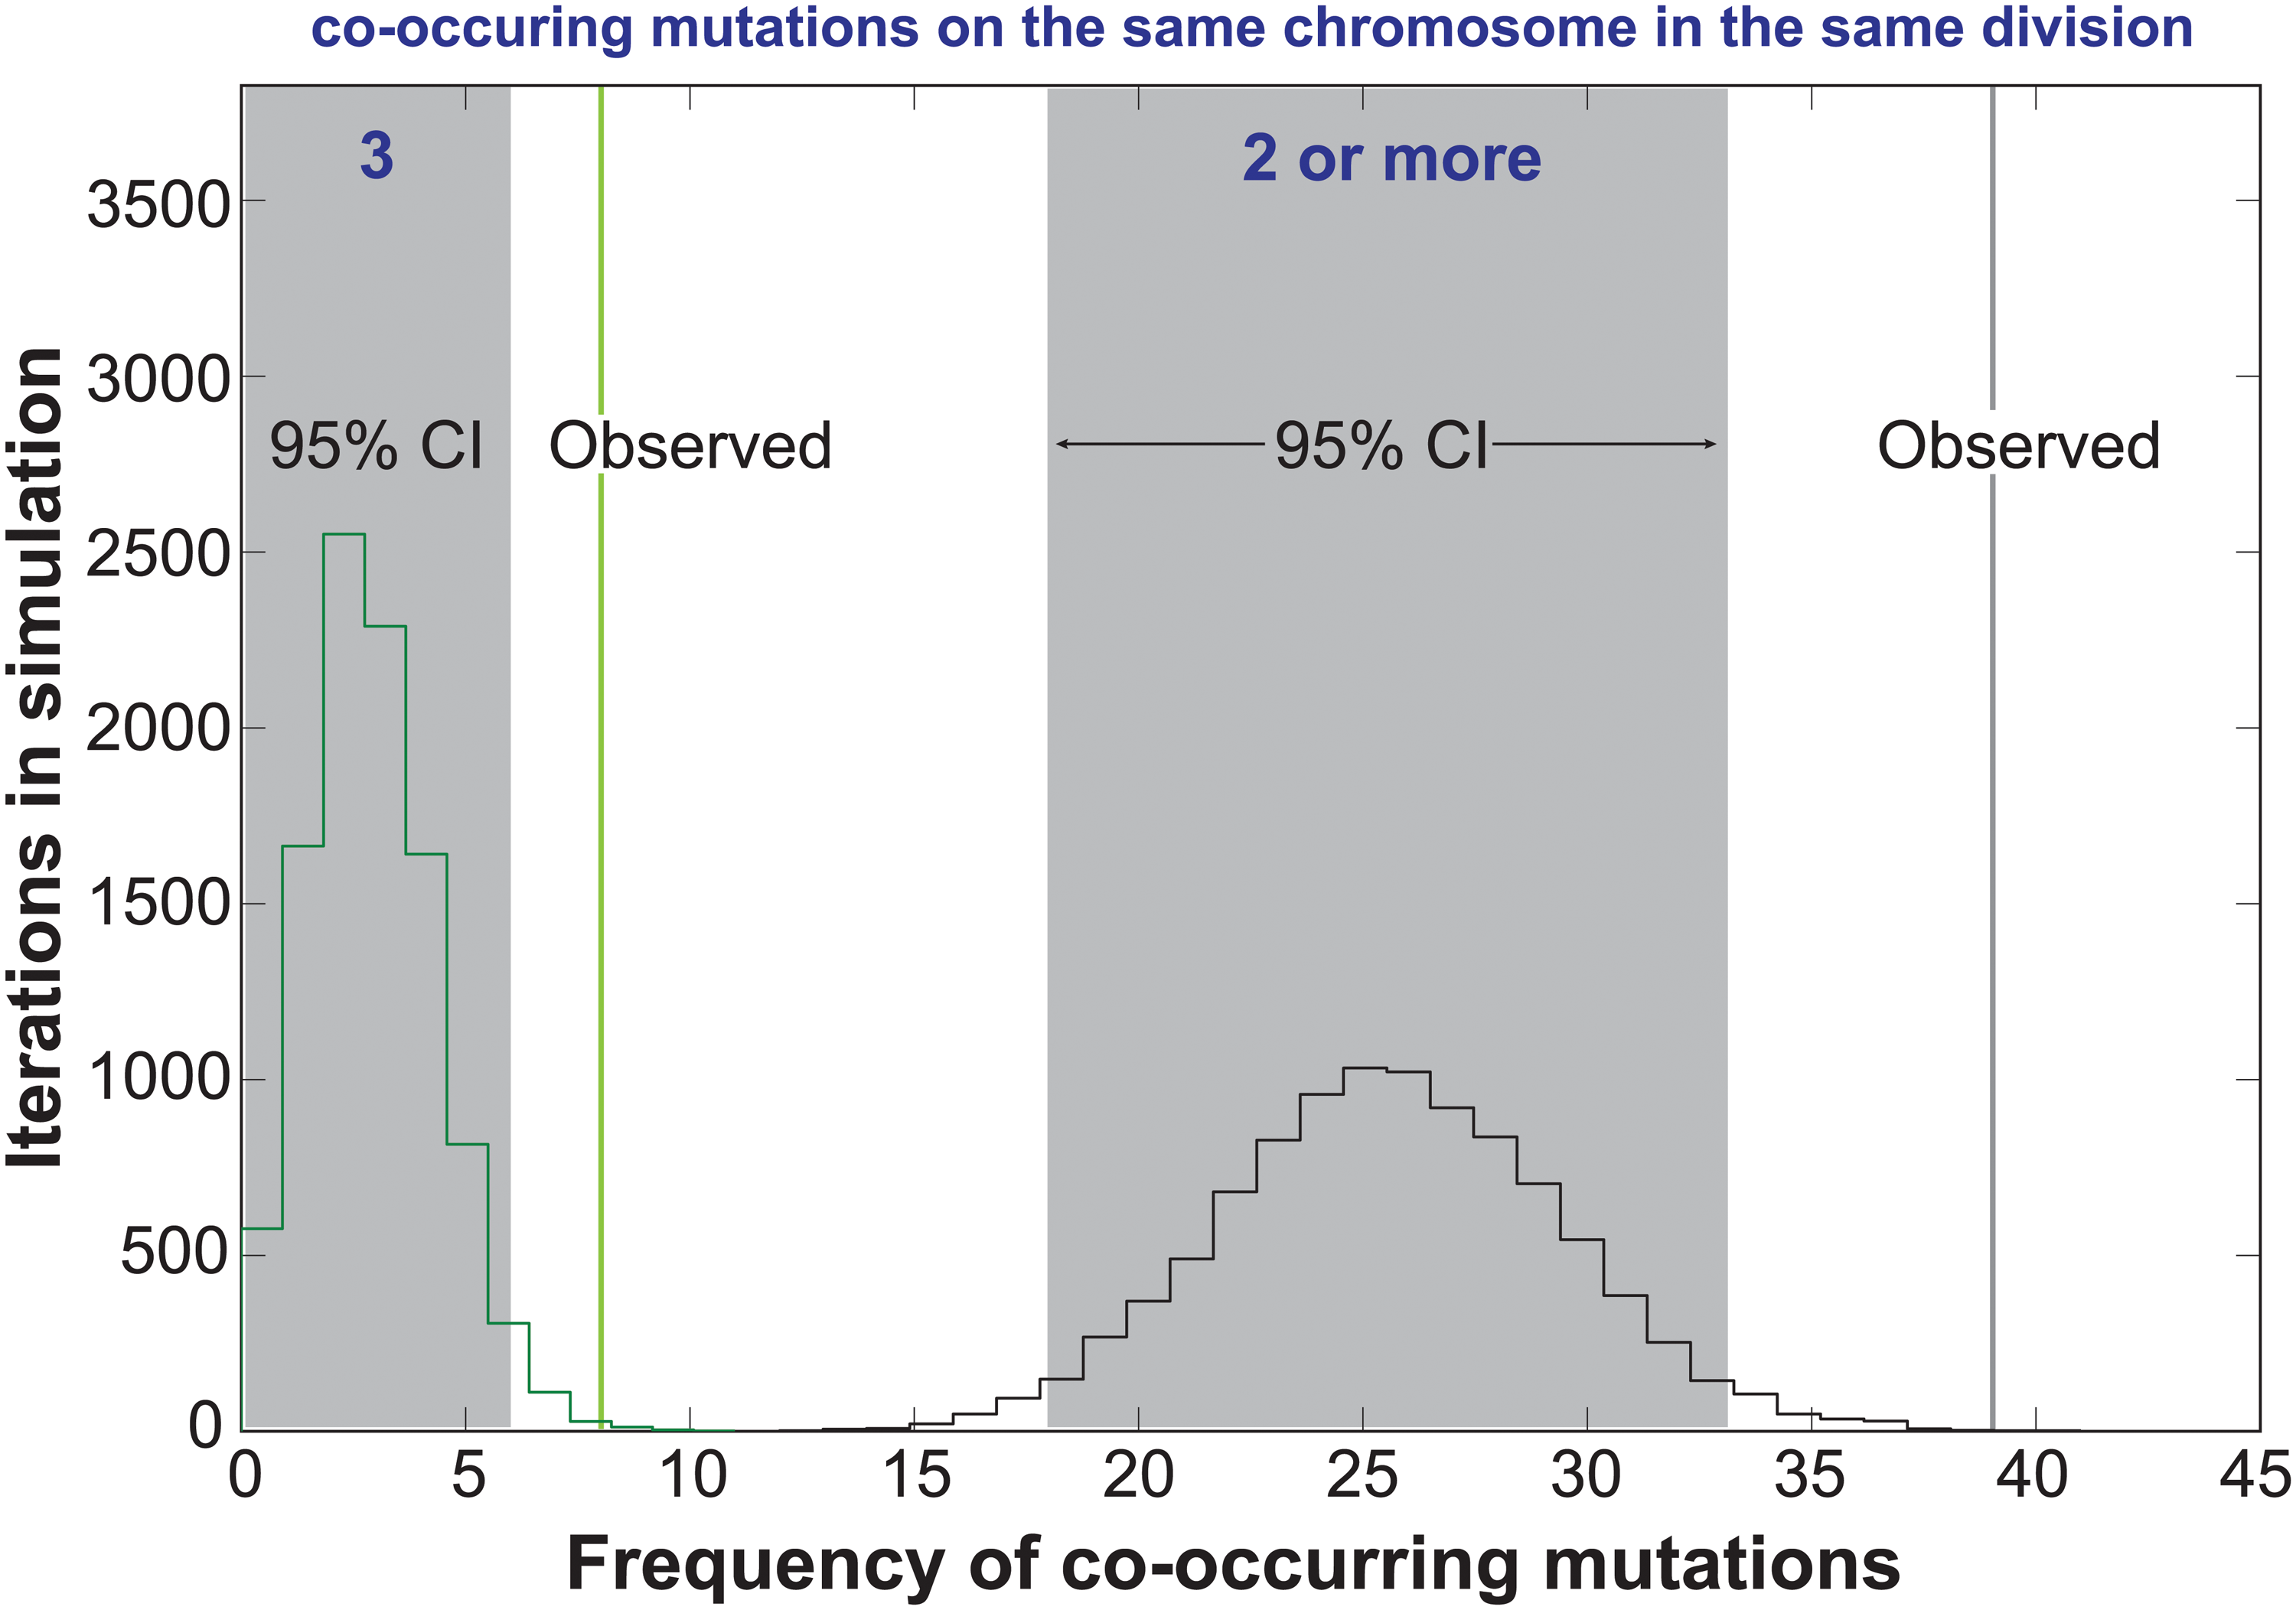 Co-occurrences of mutations in the same chromosome and cell division.